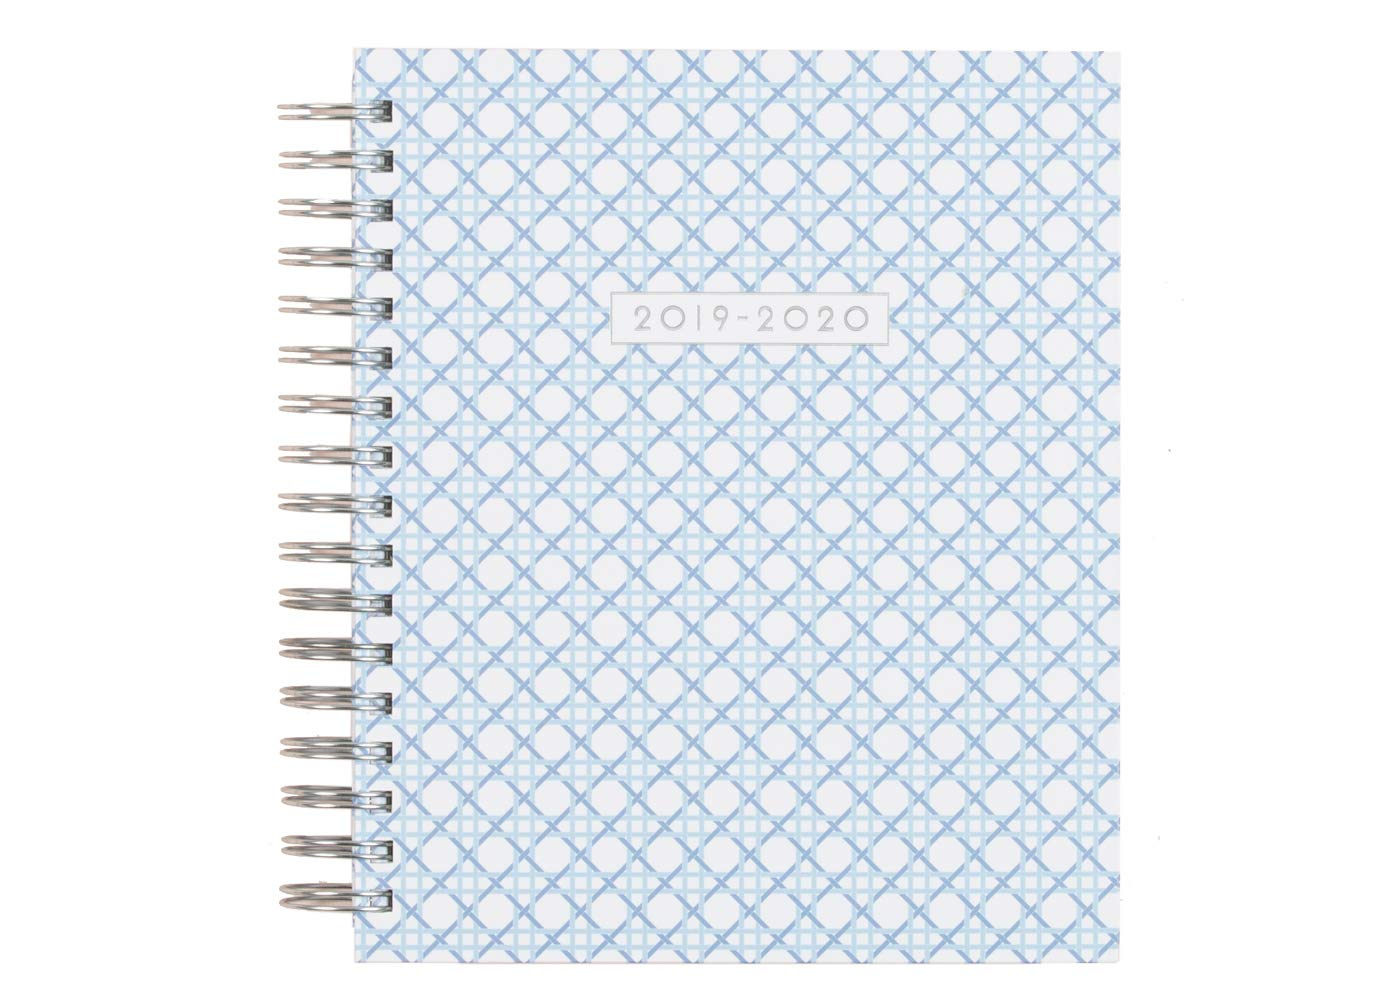 Dabney Lee for Blue Sky 2019-2020 Academic Year Daily & Monthly Planner, Hardcover, Silver-Tone Twin-Wire Binding, 7'' x 9'', Cane